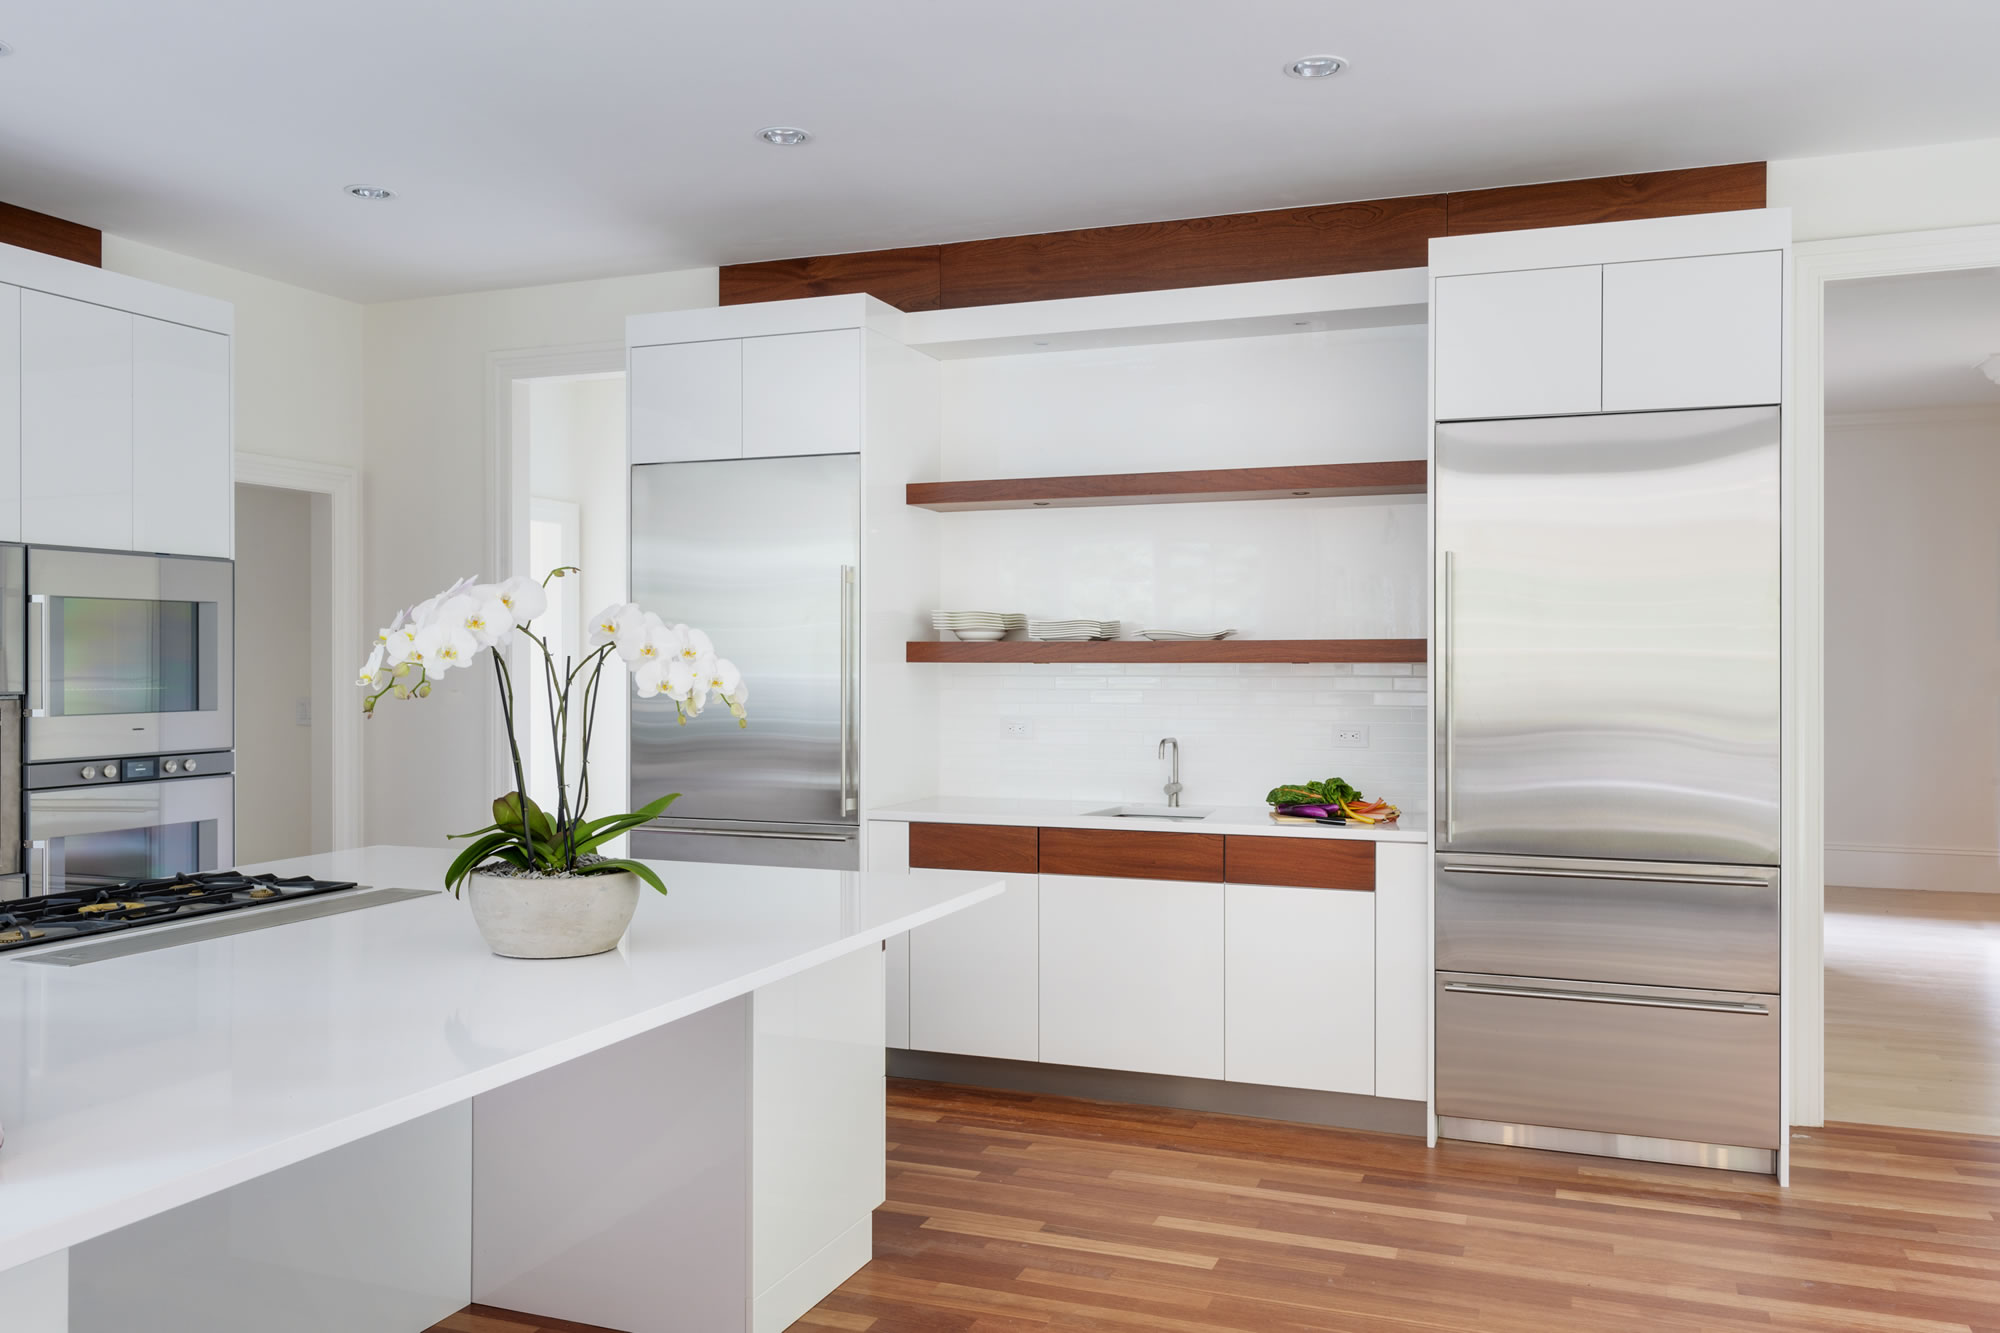 Newton Kitchens & Design - Truly hand-crafted cabinetry